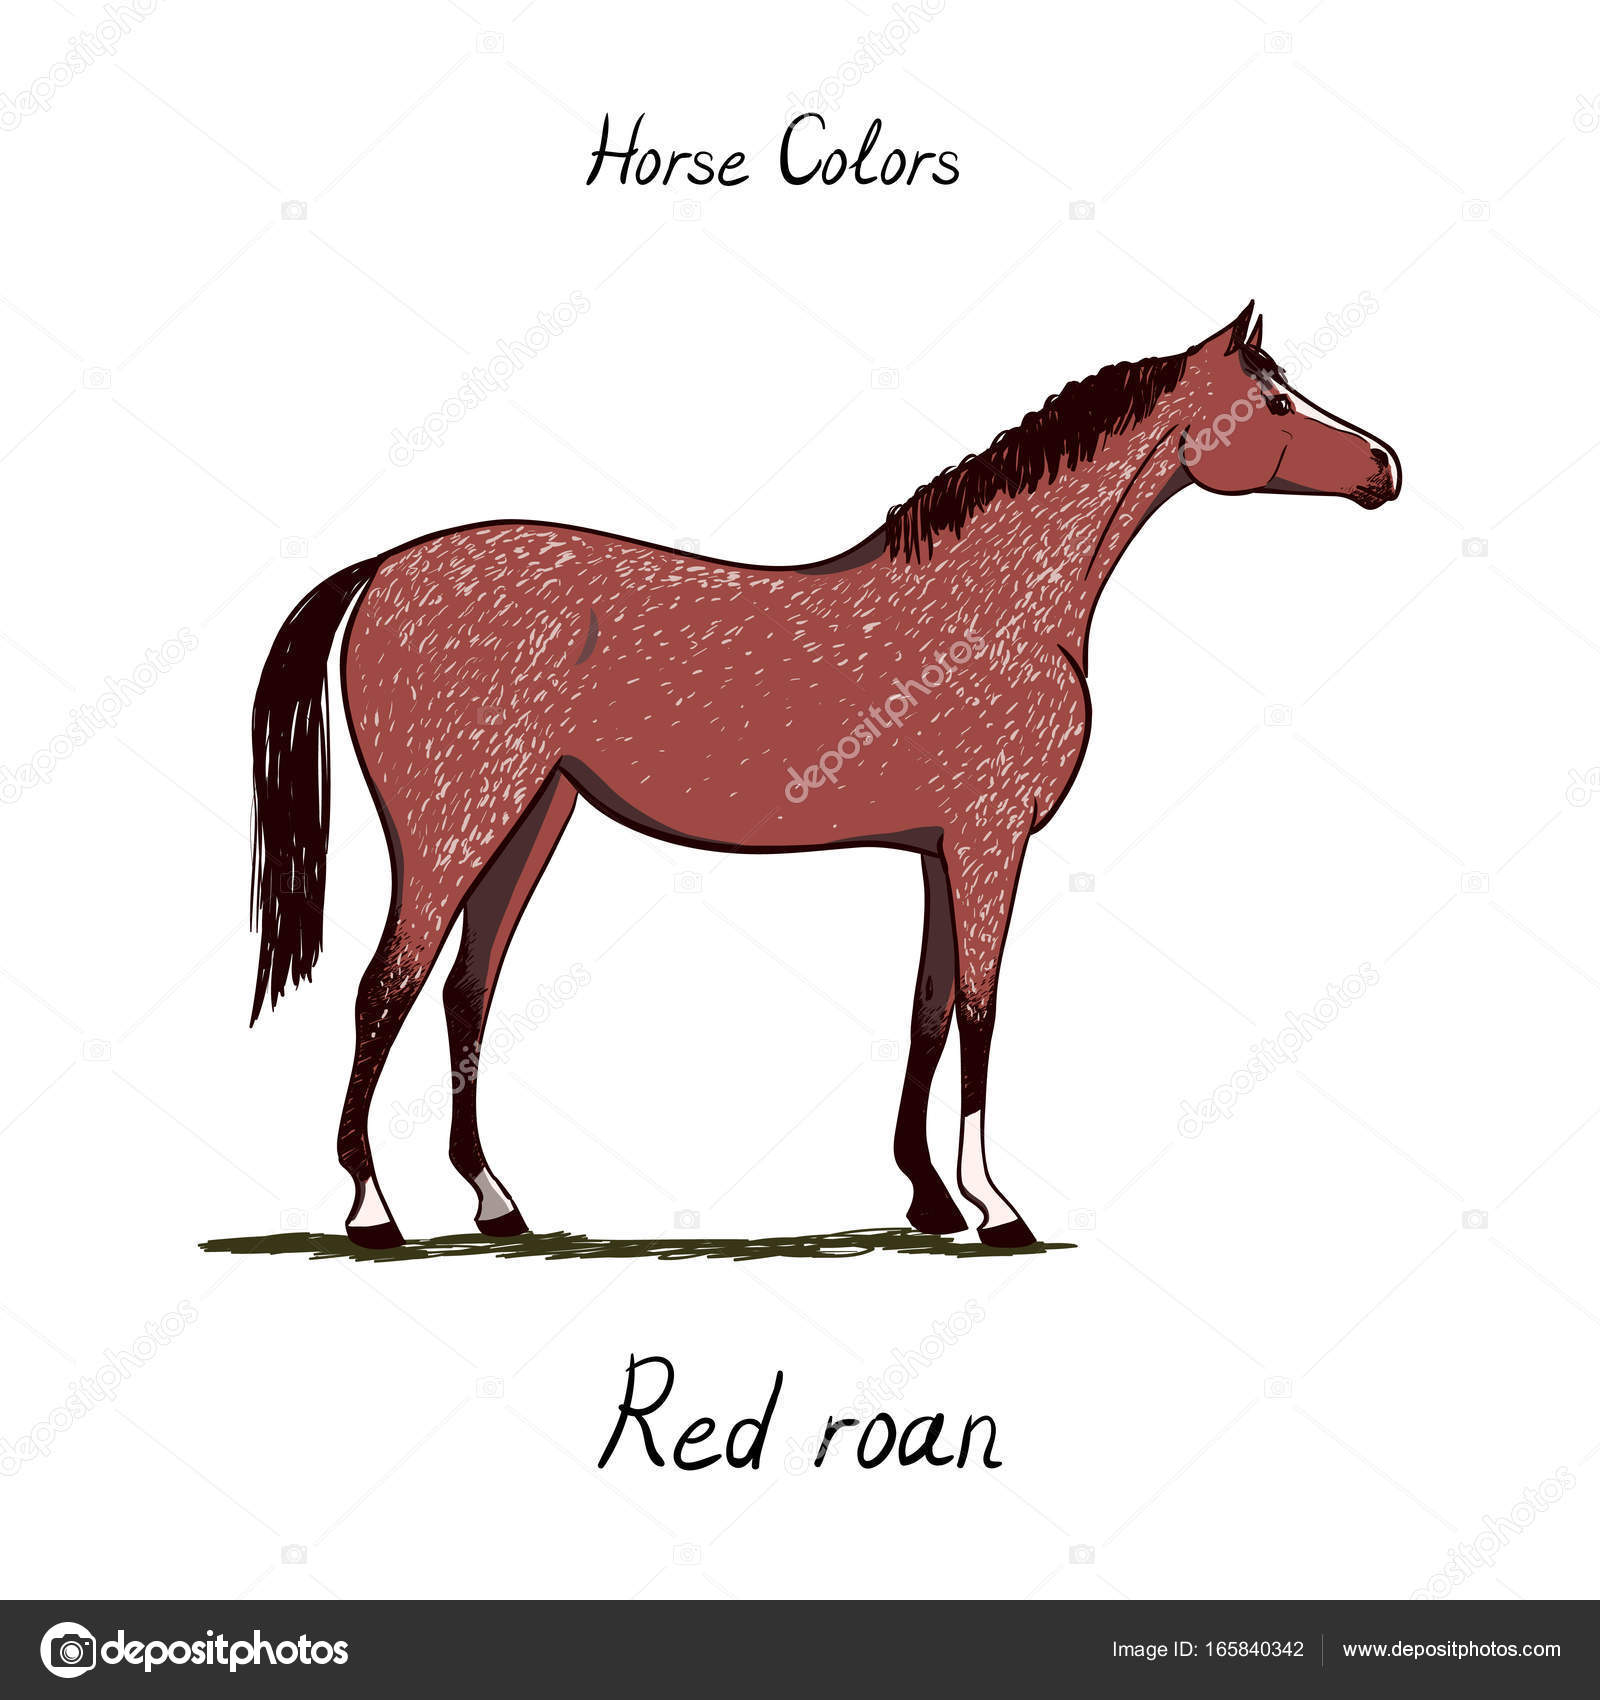 Horse color chart on white equine coat color with text equestrian horse color chart on white equine coat color with text equestrian scheme nvjuhfo Gallery